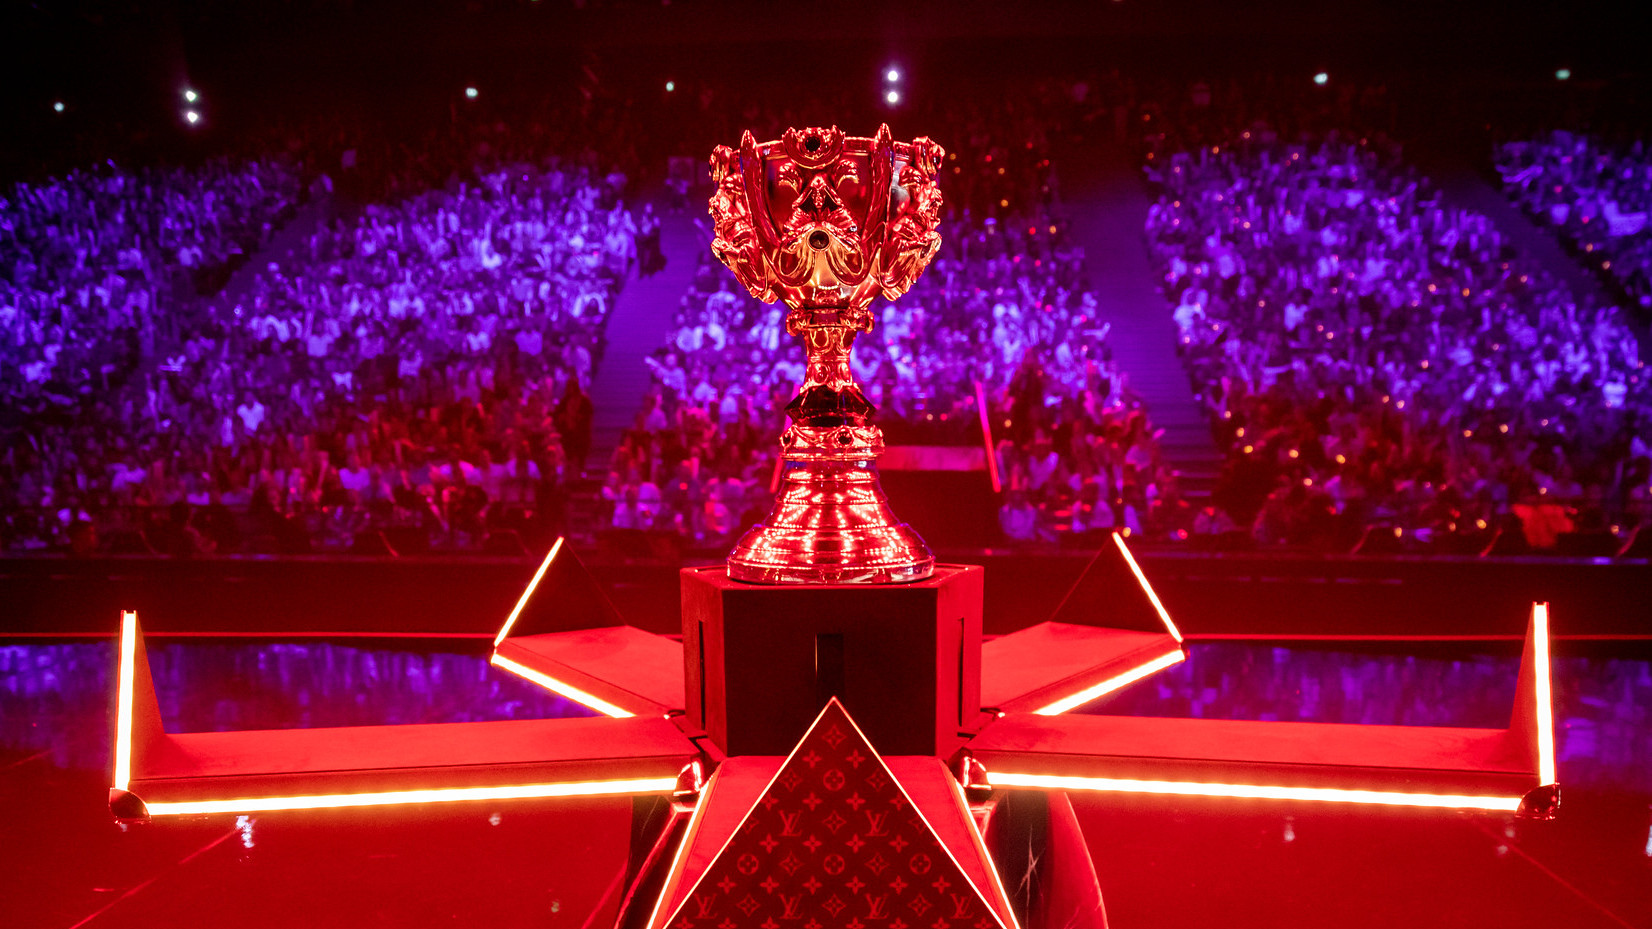 Summoners Cup in League of Legends